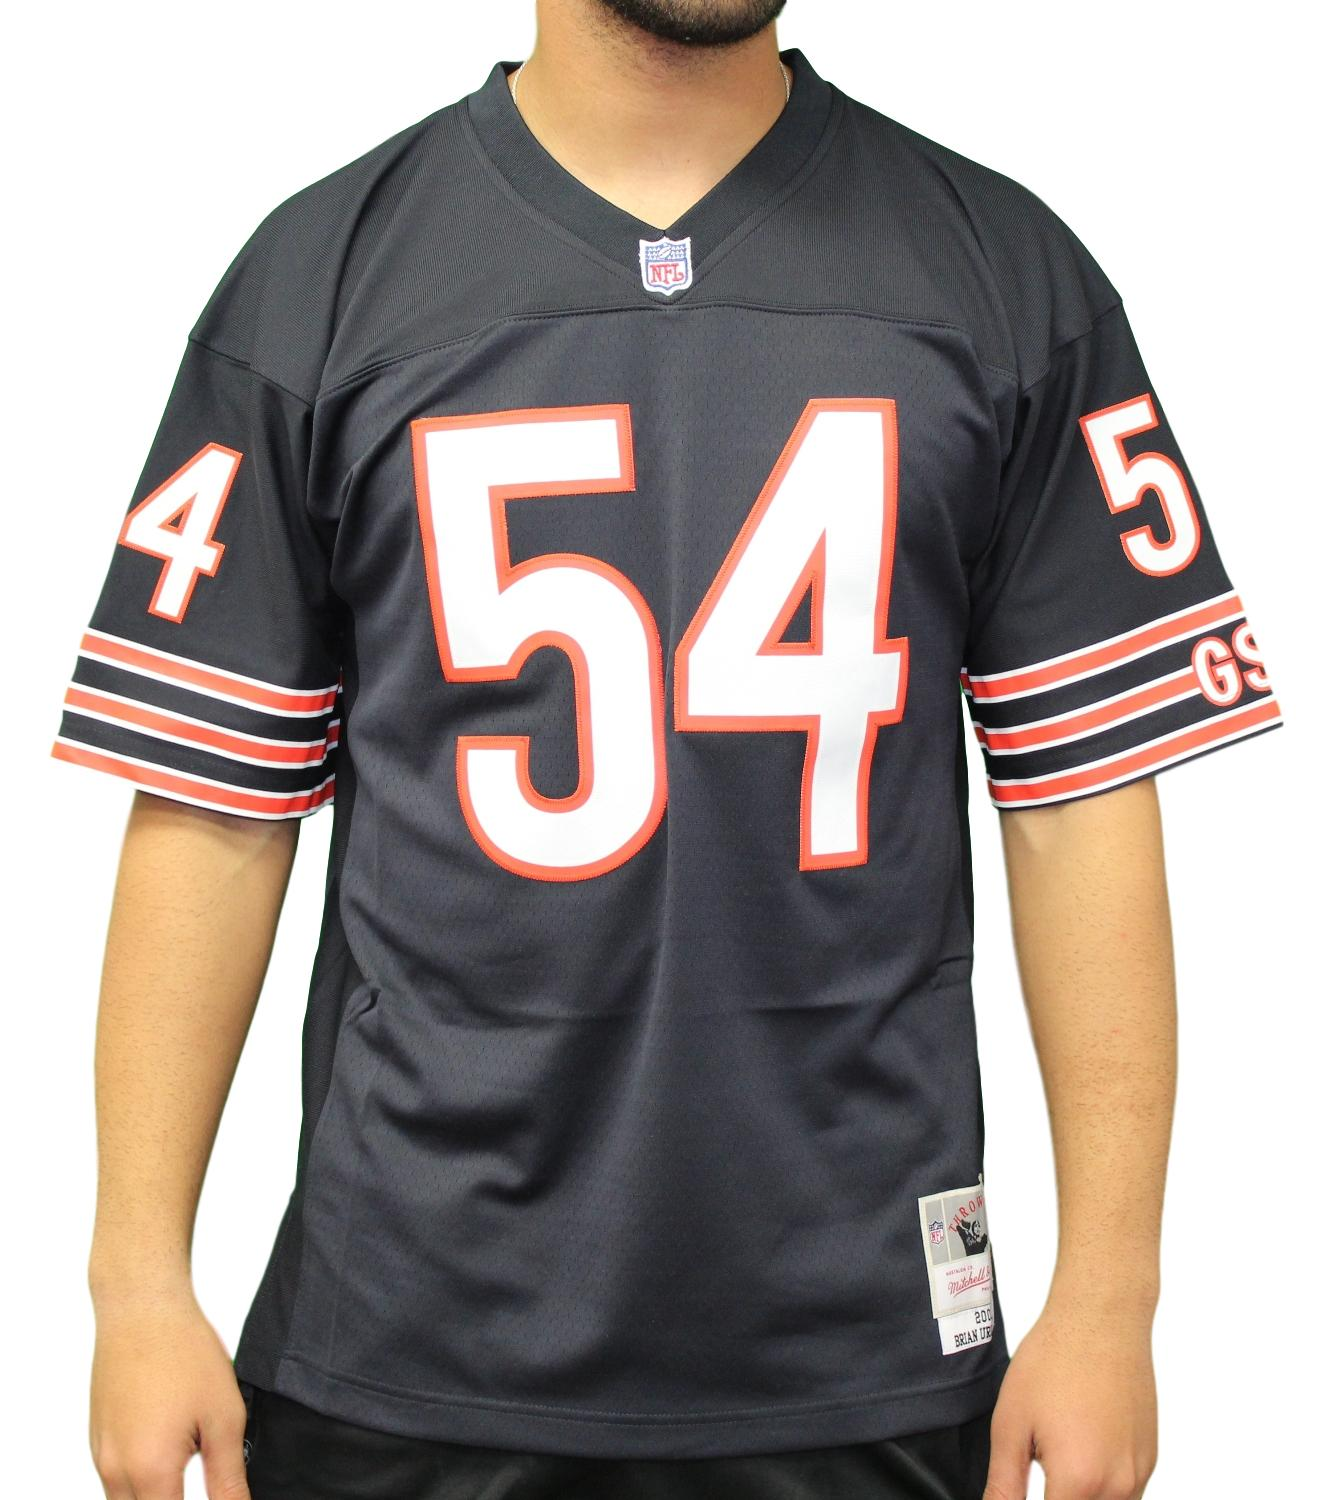 104430ab4e6 Details about Brian Urlacher Chicago Bears NFL Mitchell & Ness 2001  Throwback Premier Jersey